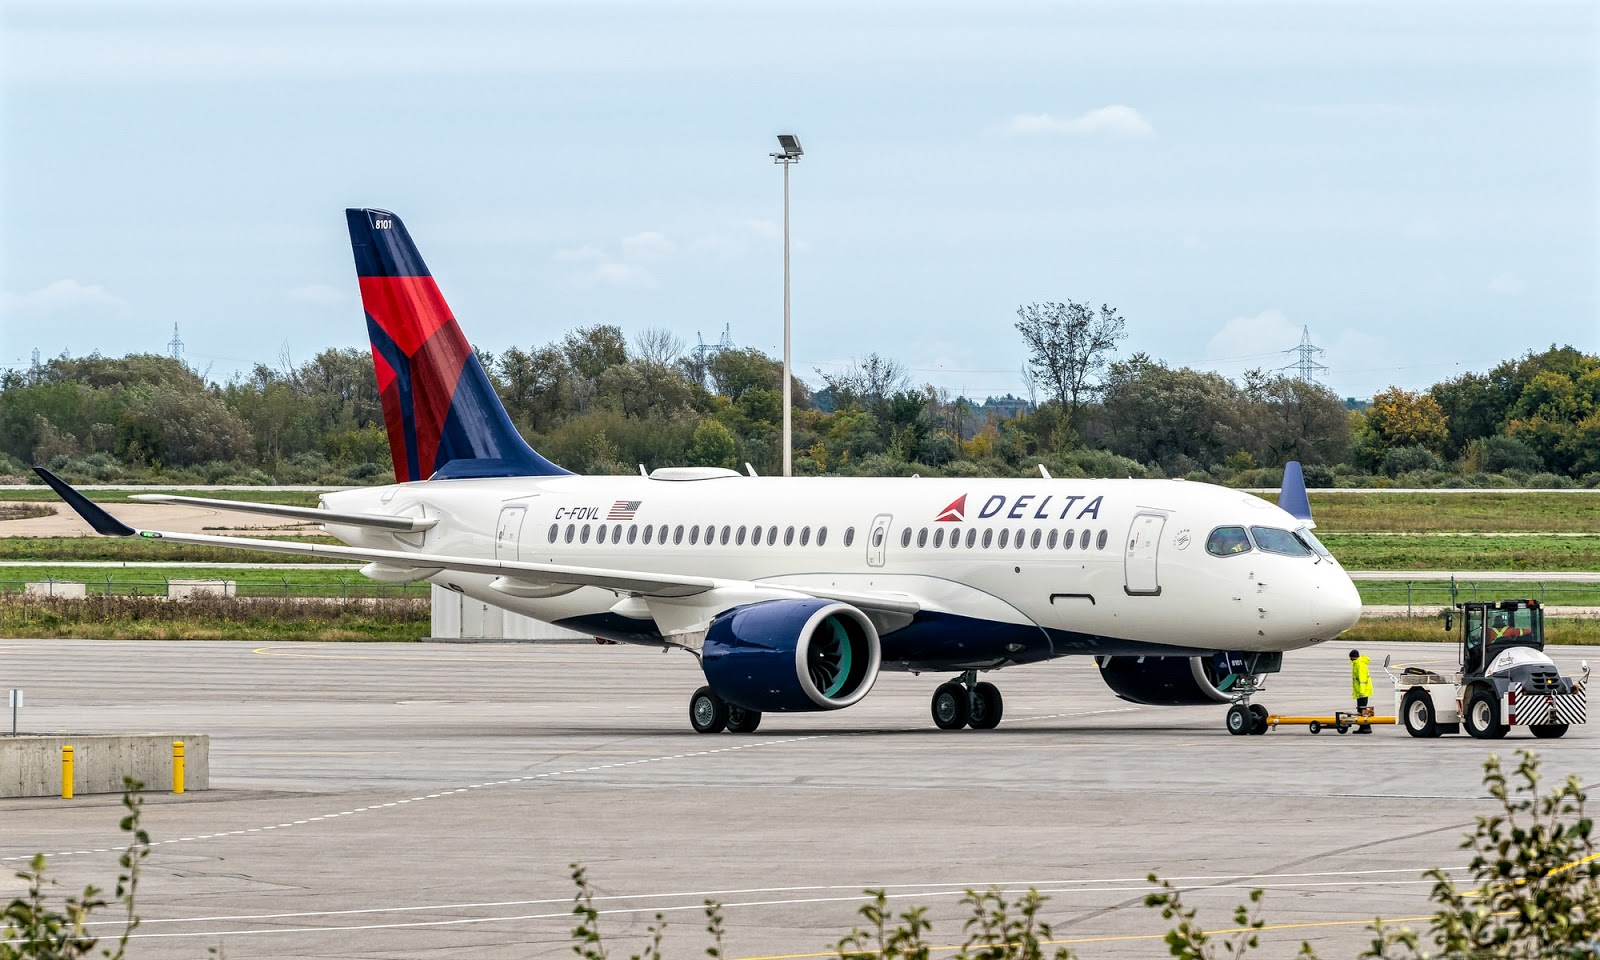 Delta Air Lines Airbus A220-100 October 2018 Delivery, C-FOVL or N101DU